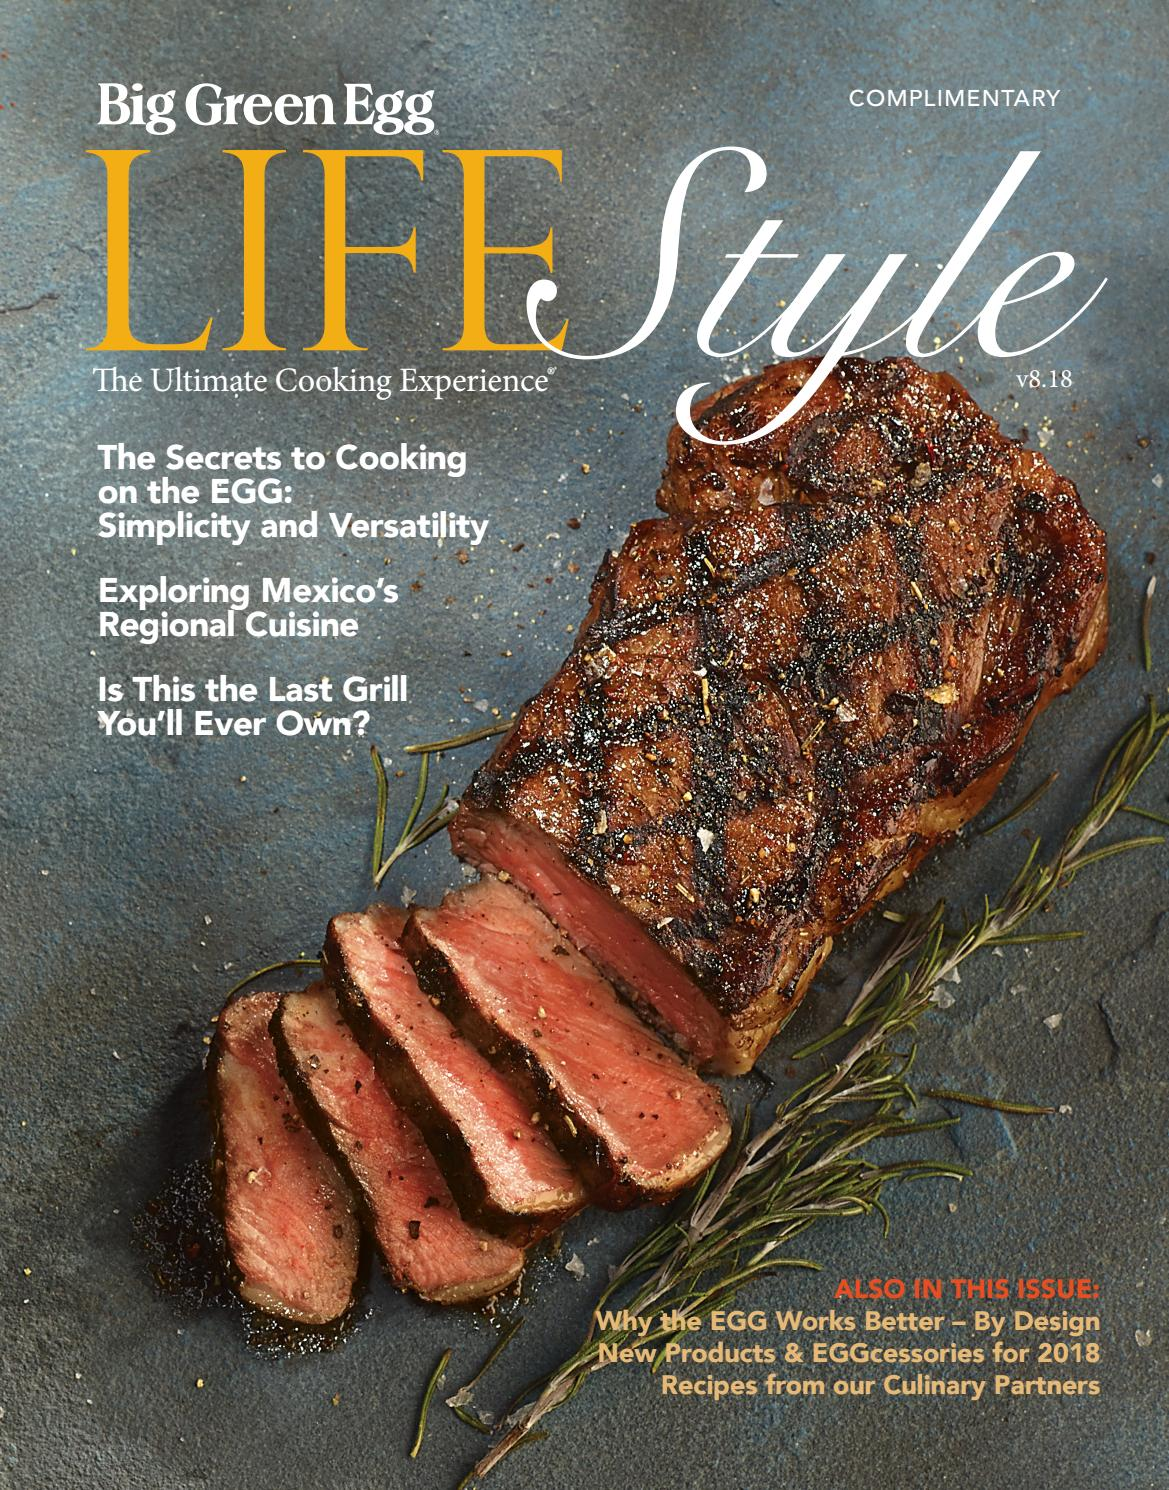 Big Green Egg Lifestyle Magazine V8 18 by Big Green Egg - issuu